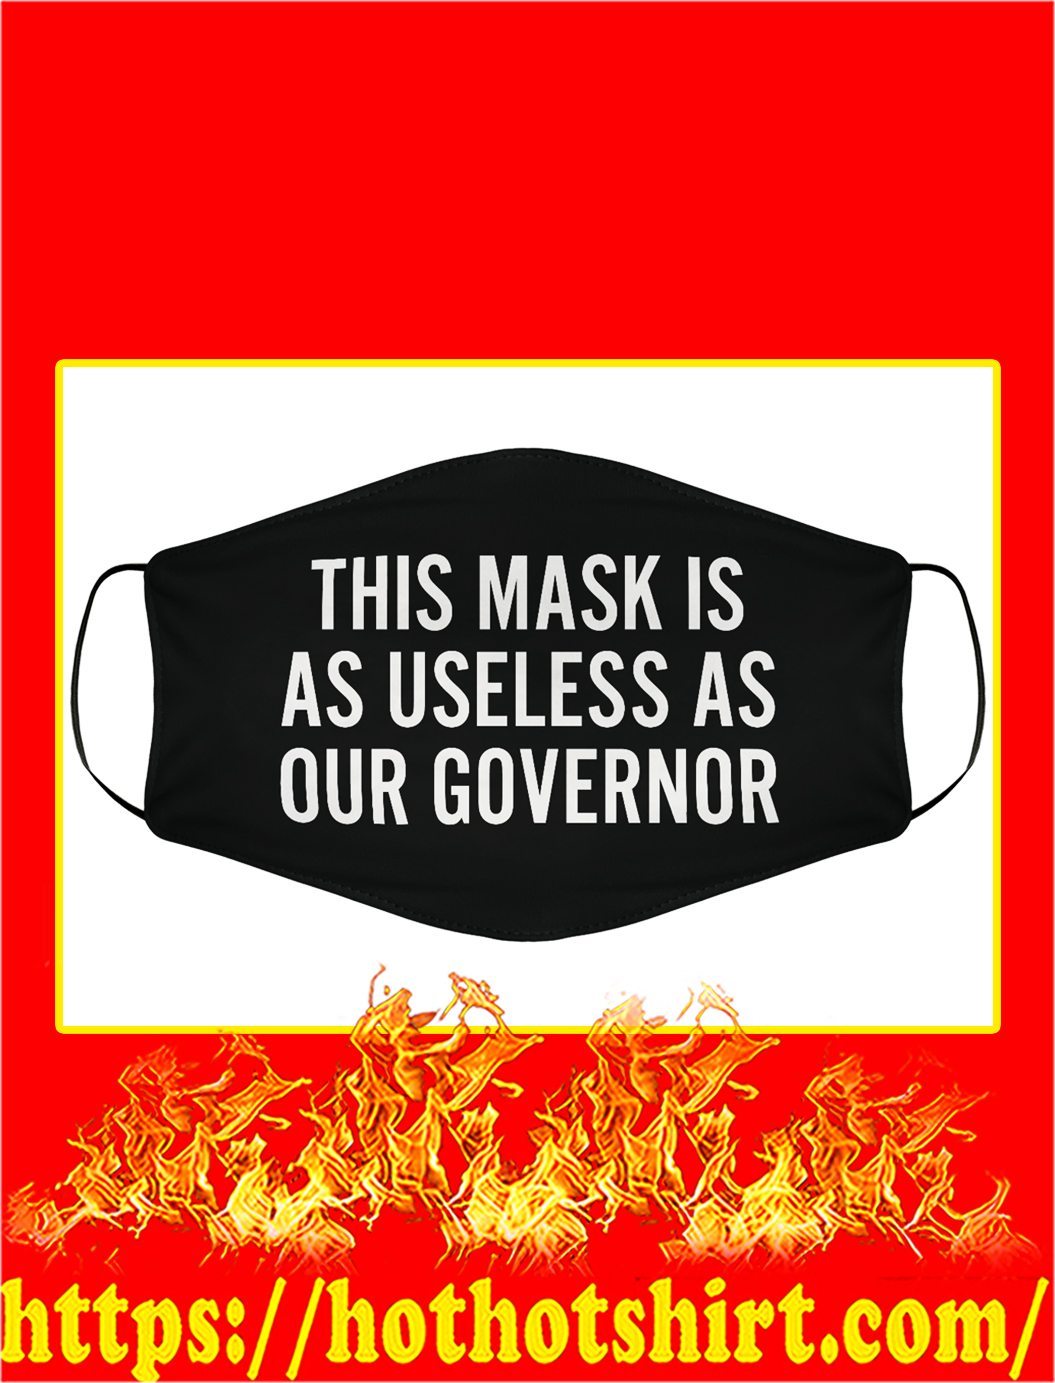 This mask is as useless as our governor face mask - pic 1